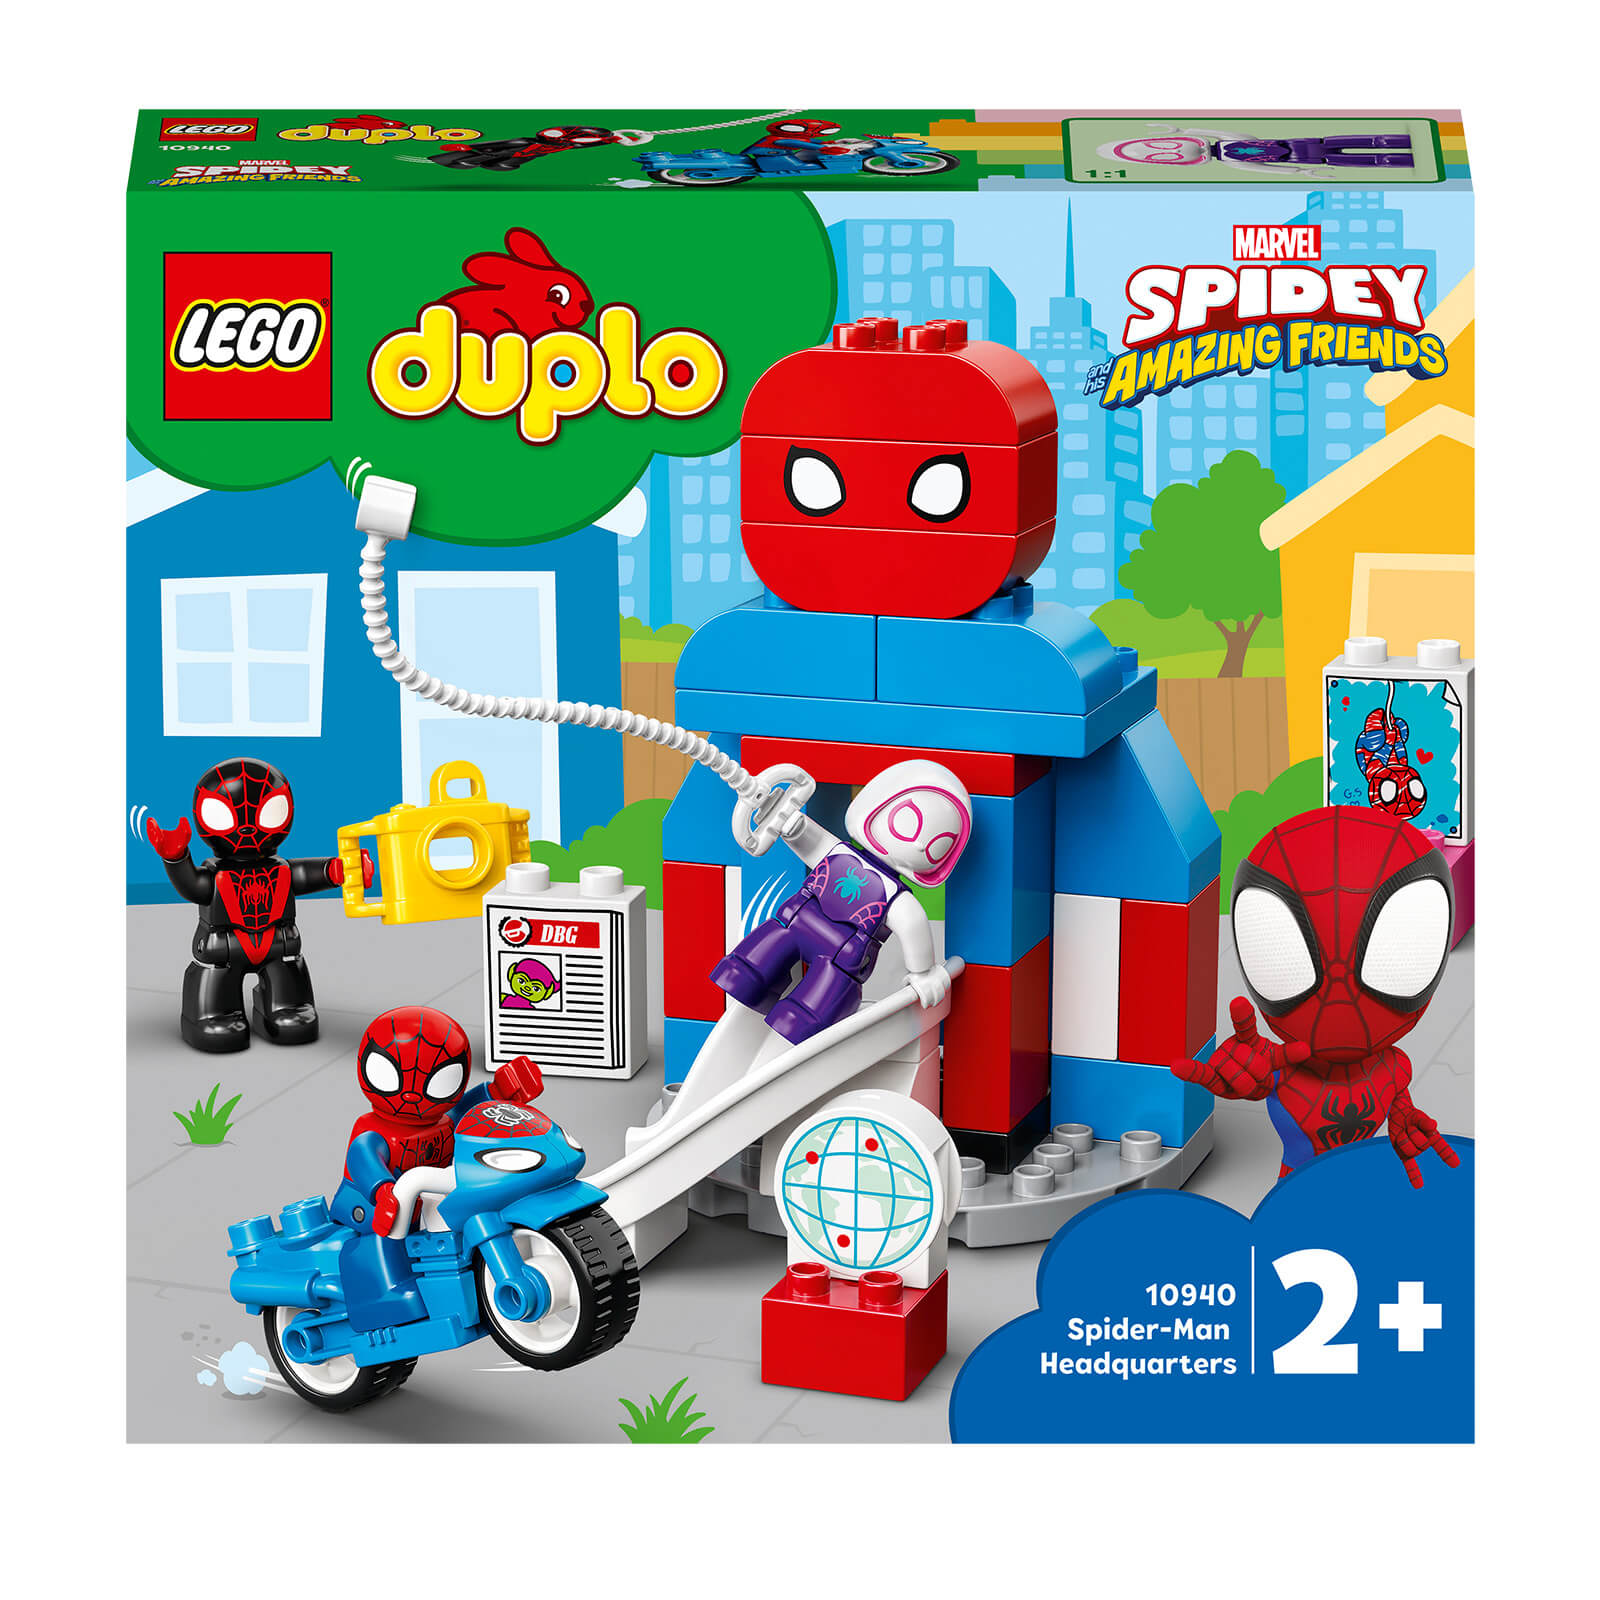 LEGO DUPLO Super Heroes Spider Man Headquarters Toy For Toddlers (10940)